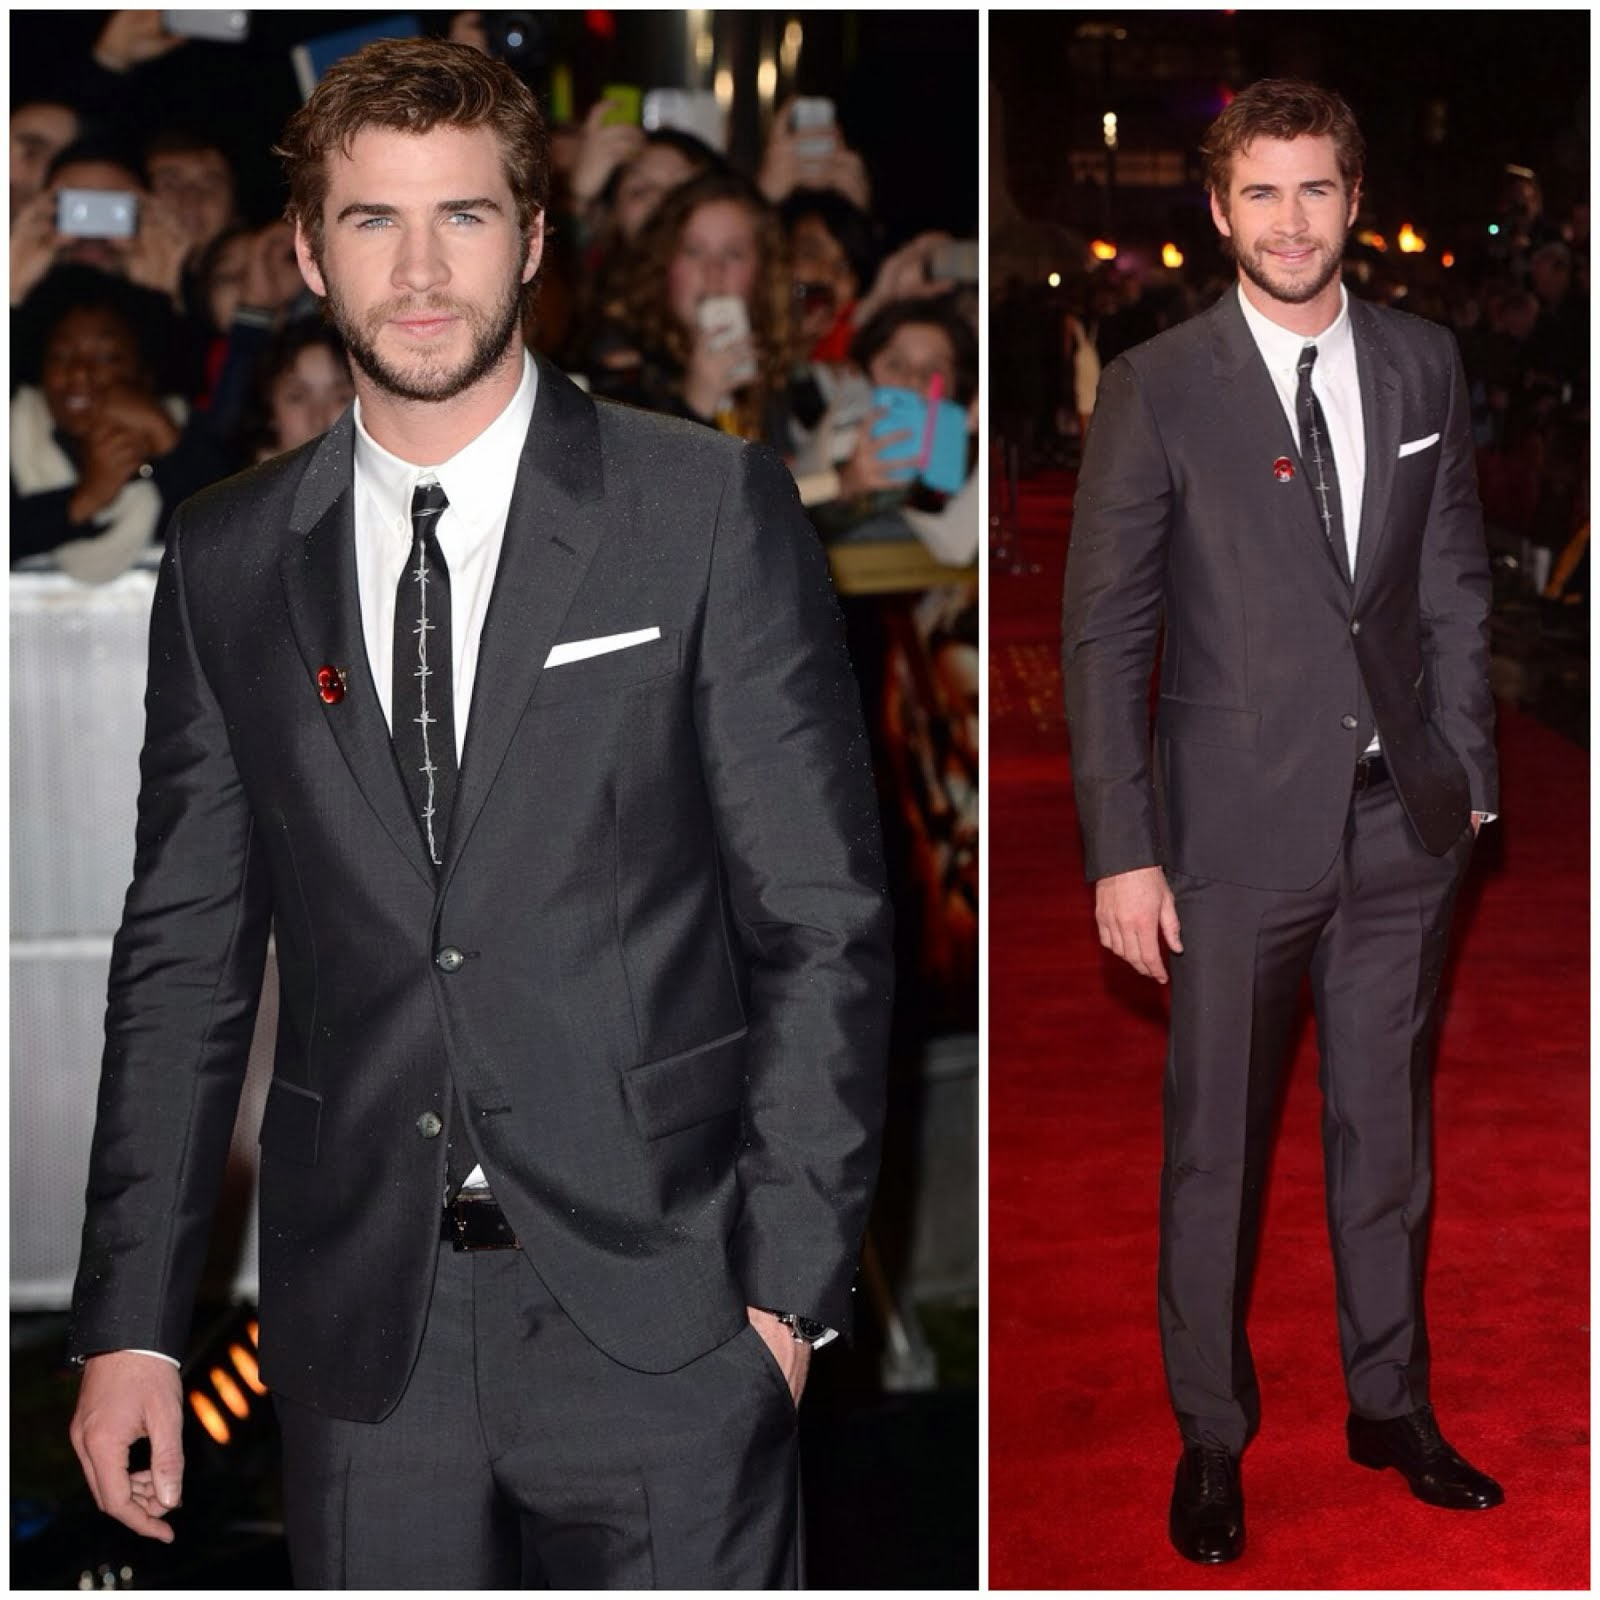 Liam Hemsworth in Alexander McQueen - 'The Hunger Games: Catching Fire' London Premiere, November 2013